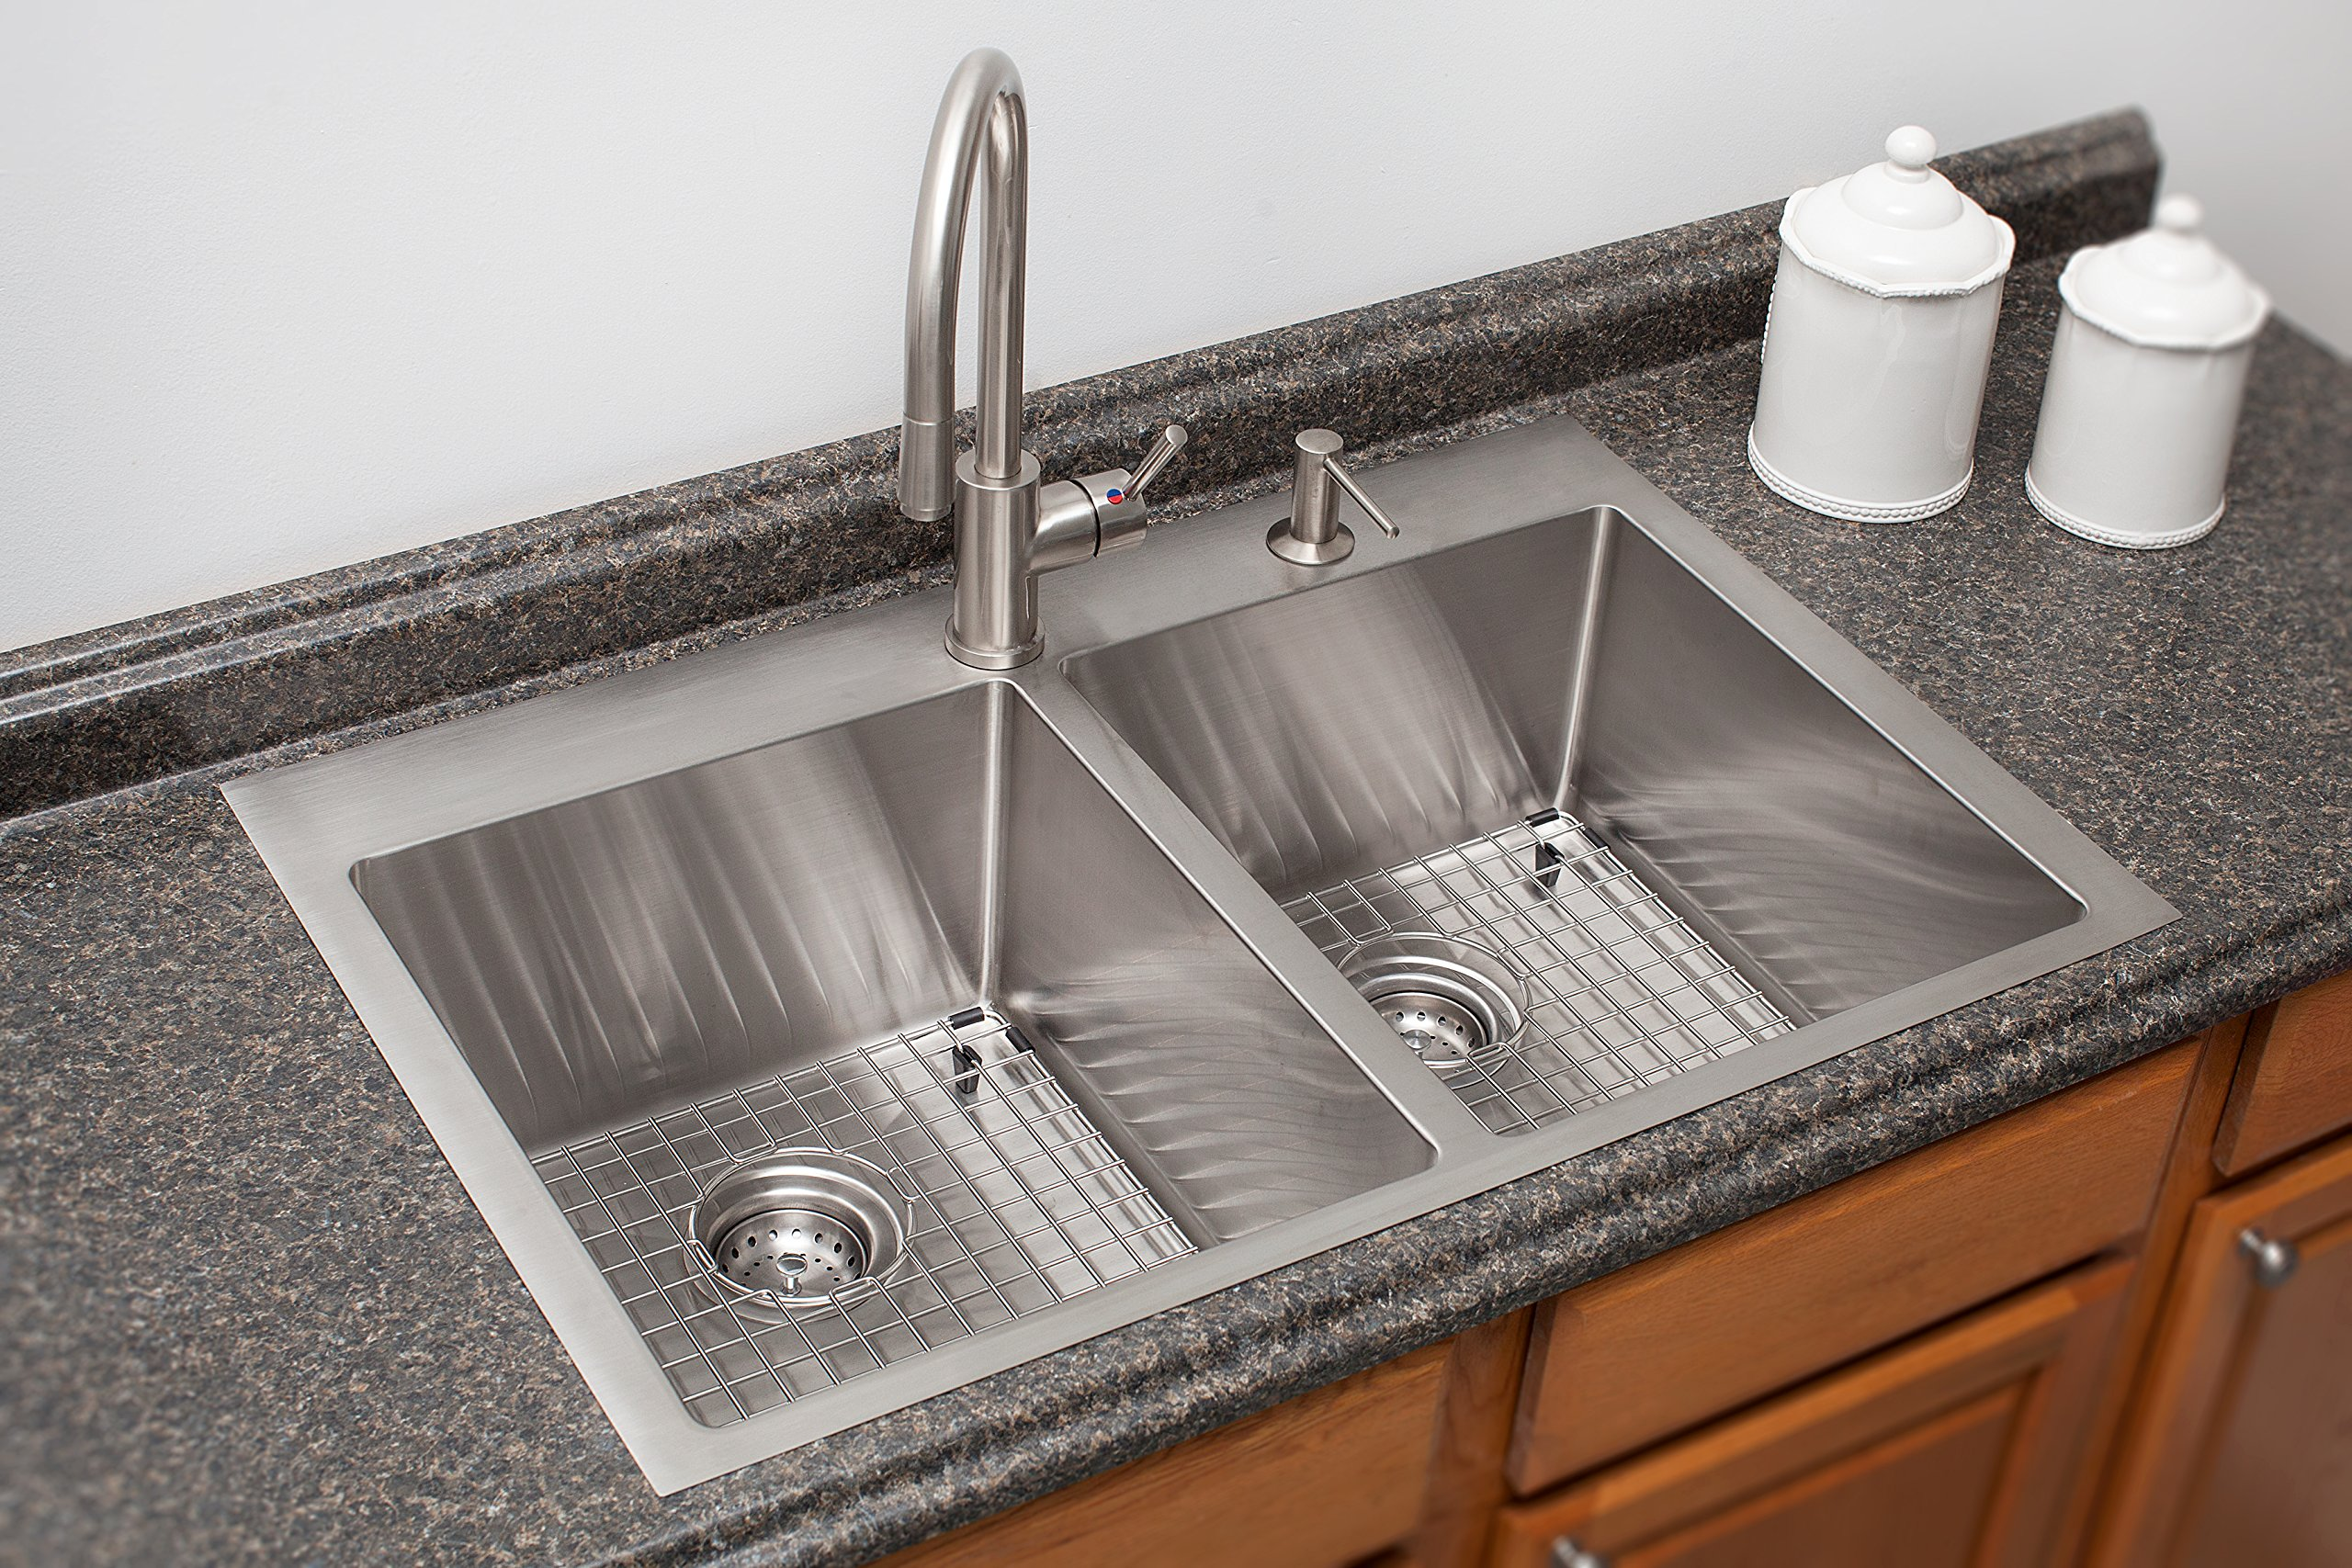 Franke HF3322-1KIT Vector 33.5 inch (33 inch) Handmade Dual Mount Double Bowl deep Kitchen Sink Kit, Stainless Steel by Franke (Image #2)